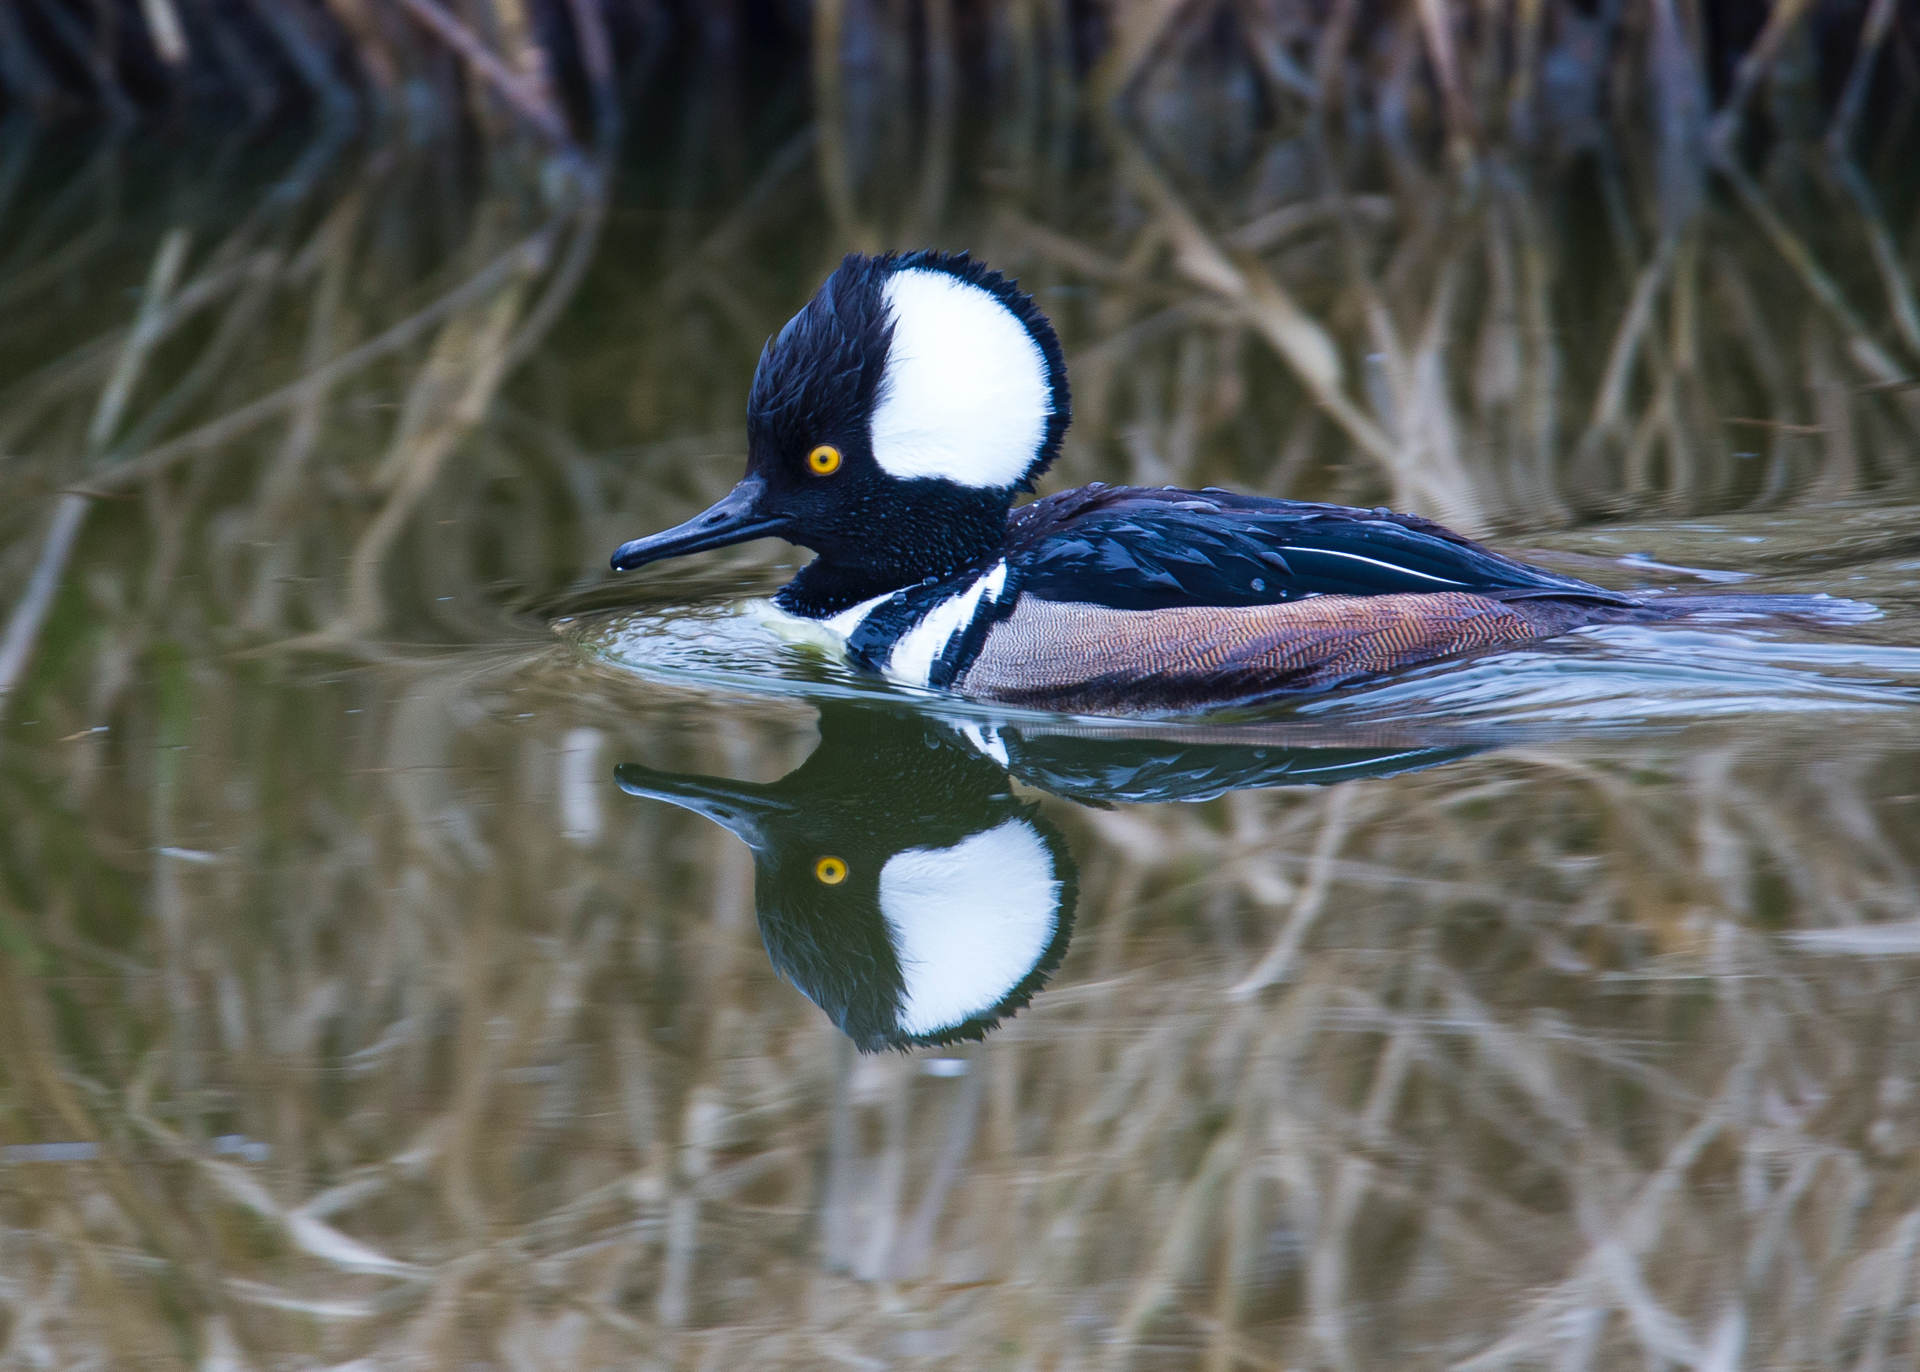 This was a new one for new - there was a mating pair of Hooded Mergansers!